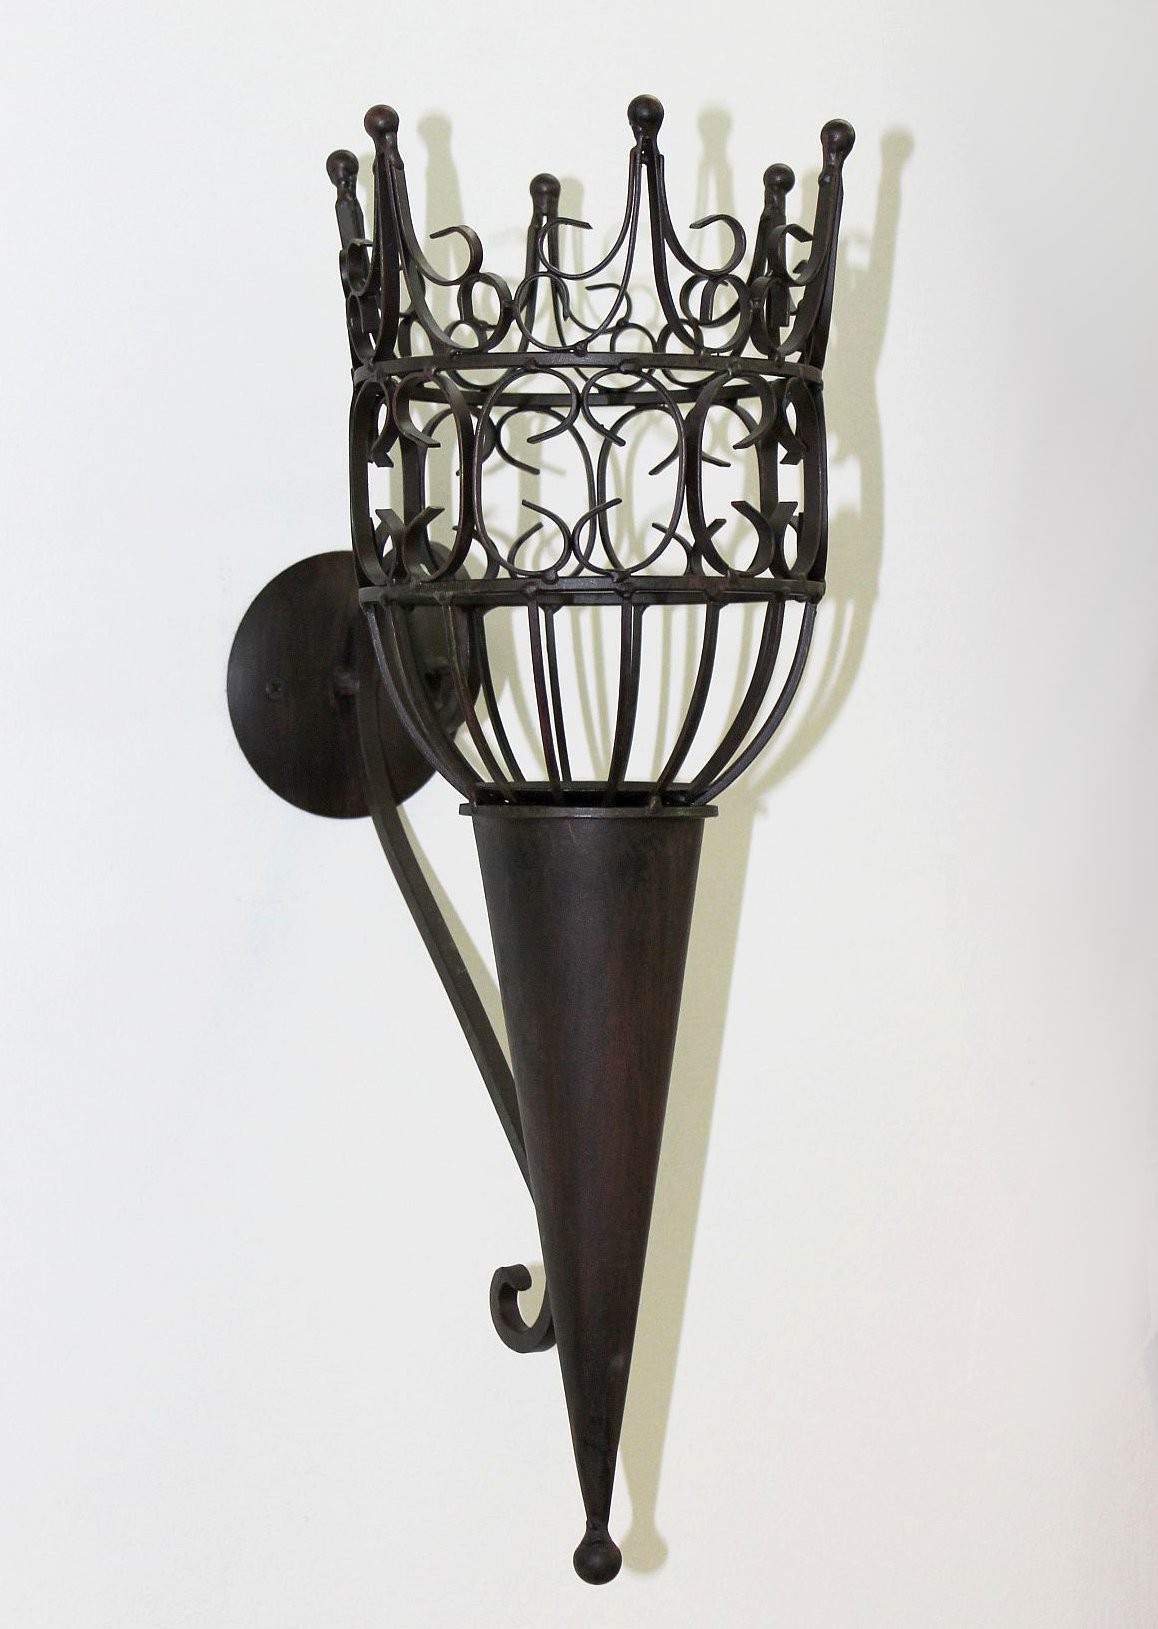 Sconce Castle 92066 Wall mounted candle holder metal ... on Wall Mounted Candle Sconce id=76529